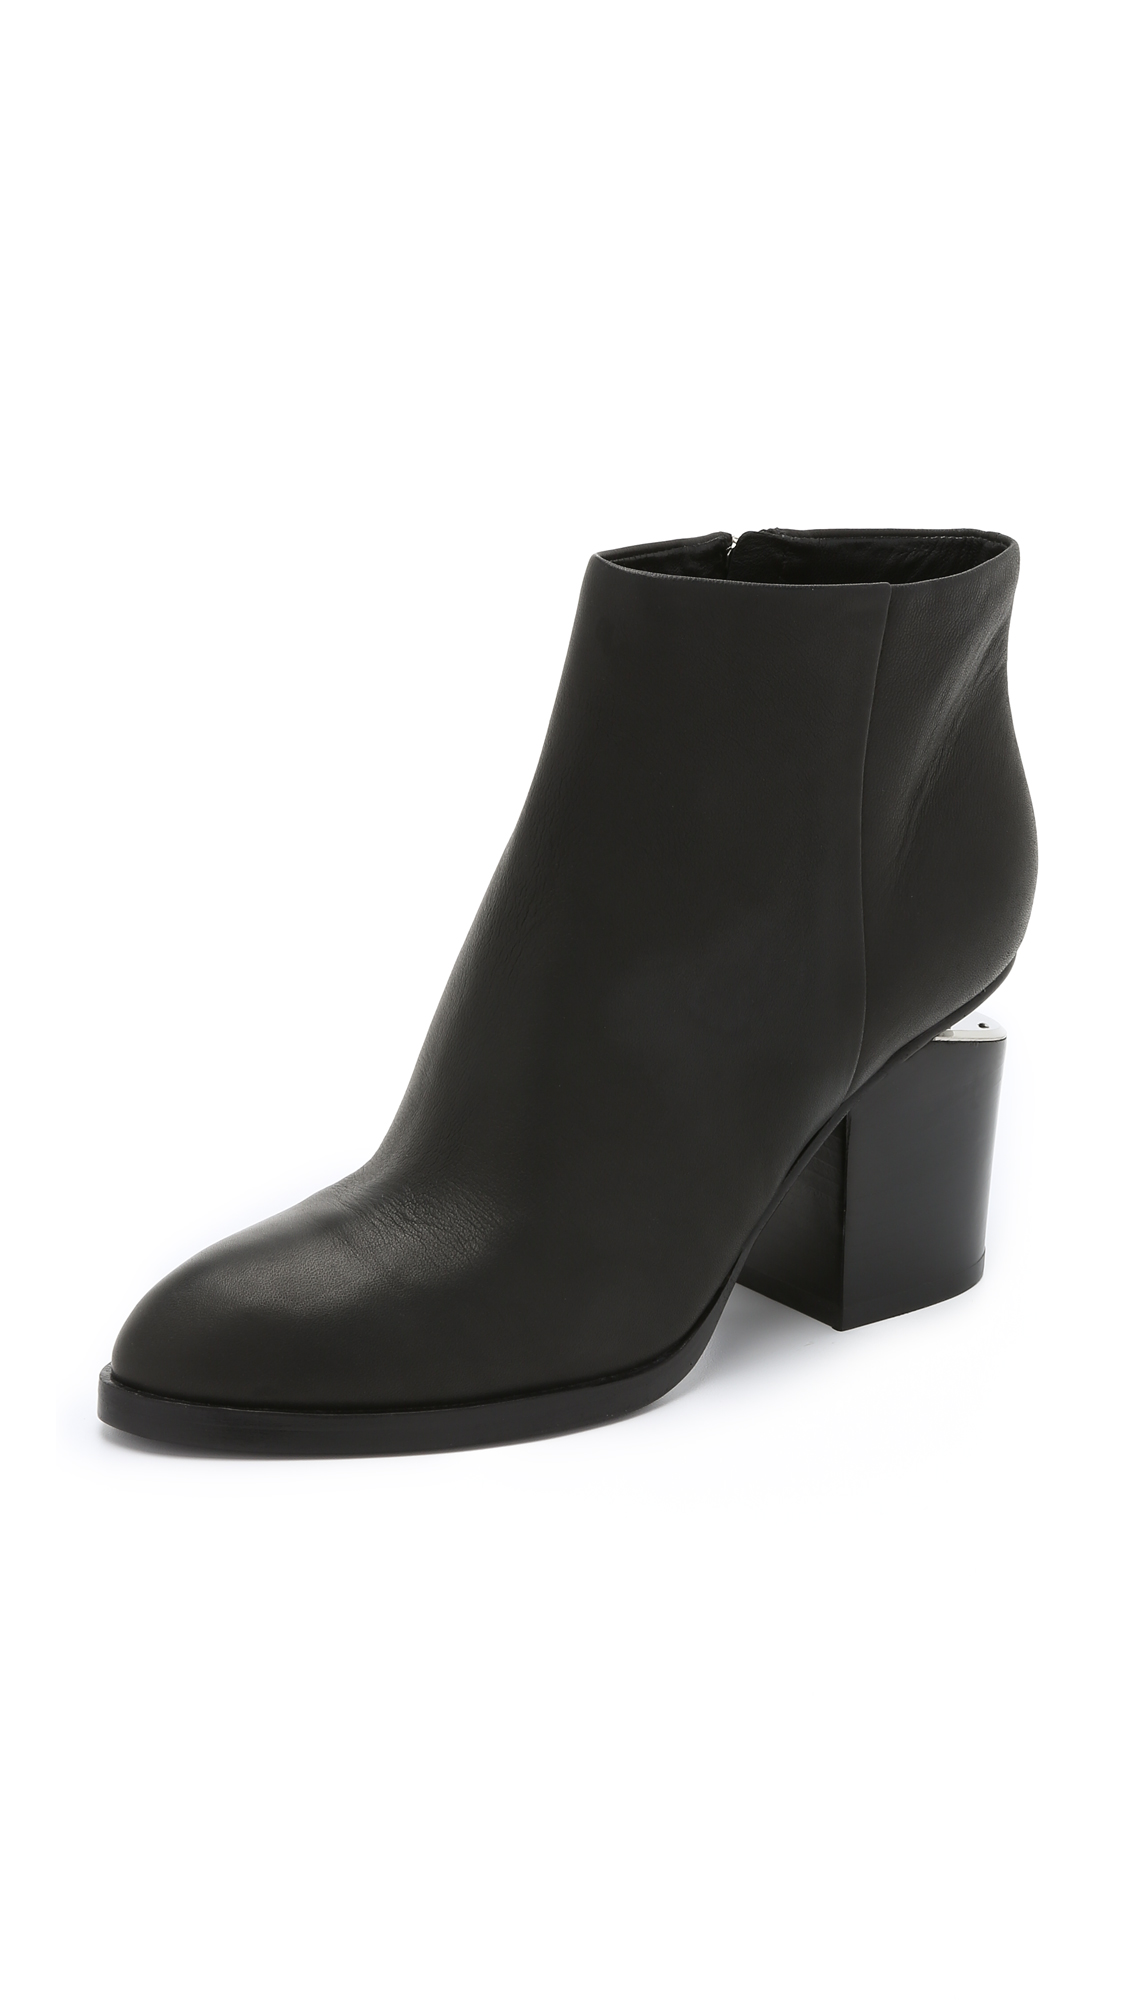 Women'S Gabi Round Toe Leather Booties - Silver-Tone Hardware in Black from ALEXANDER WANG